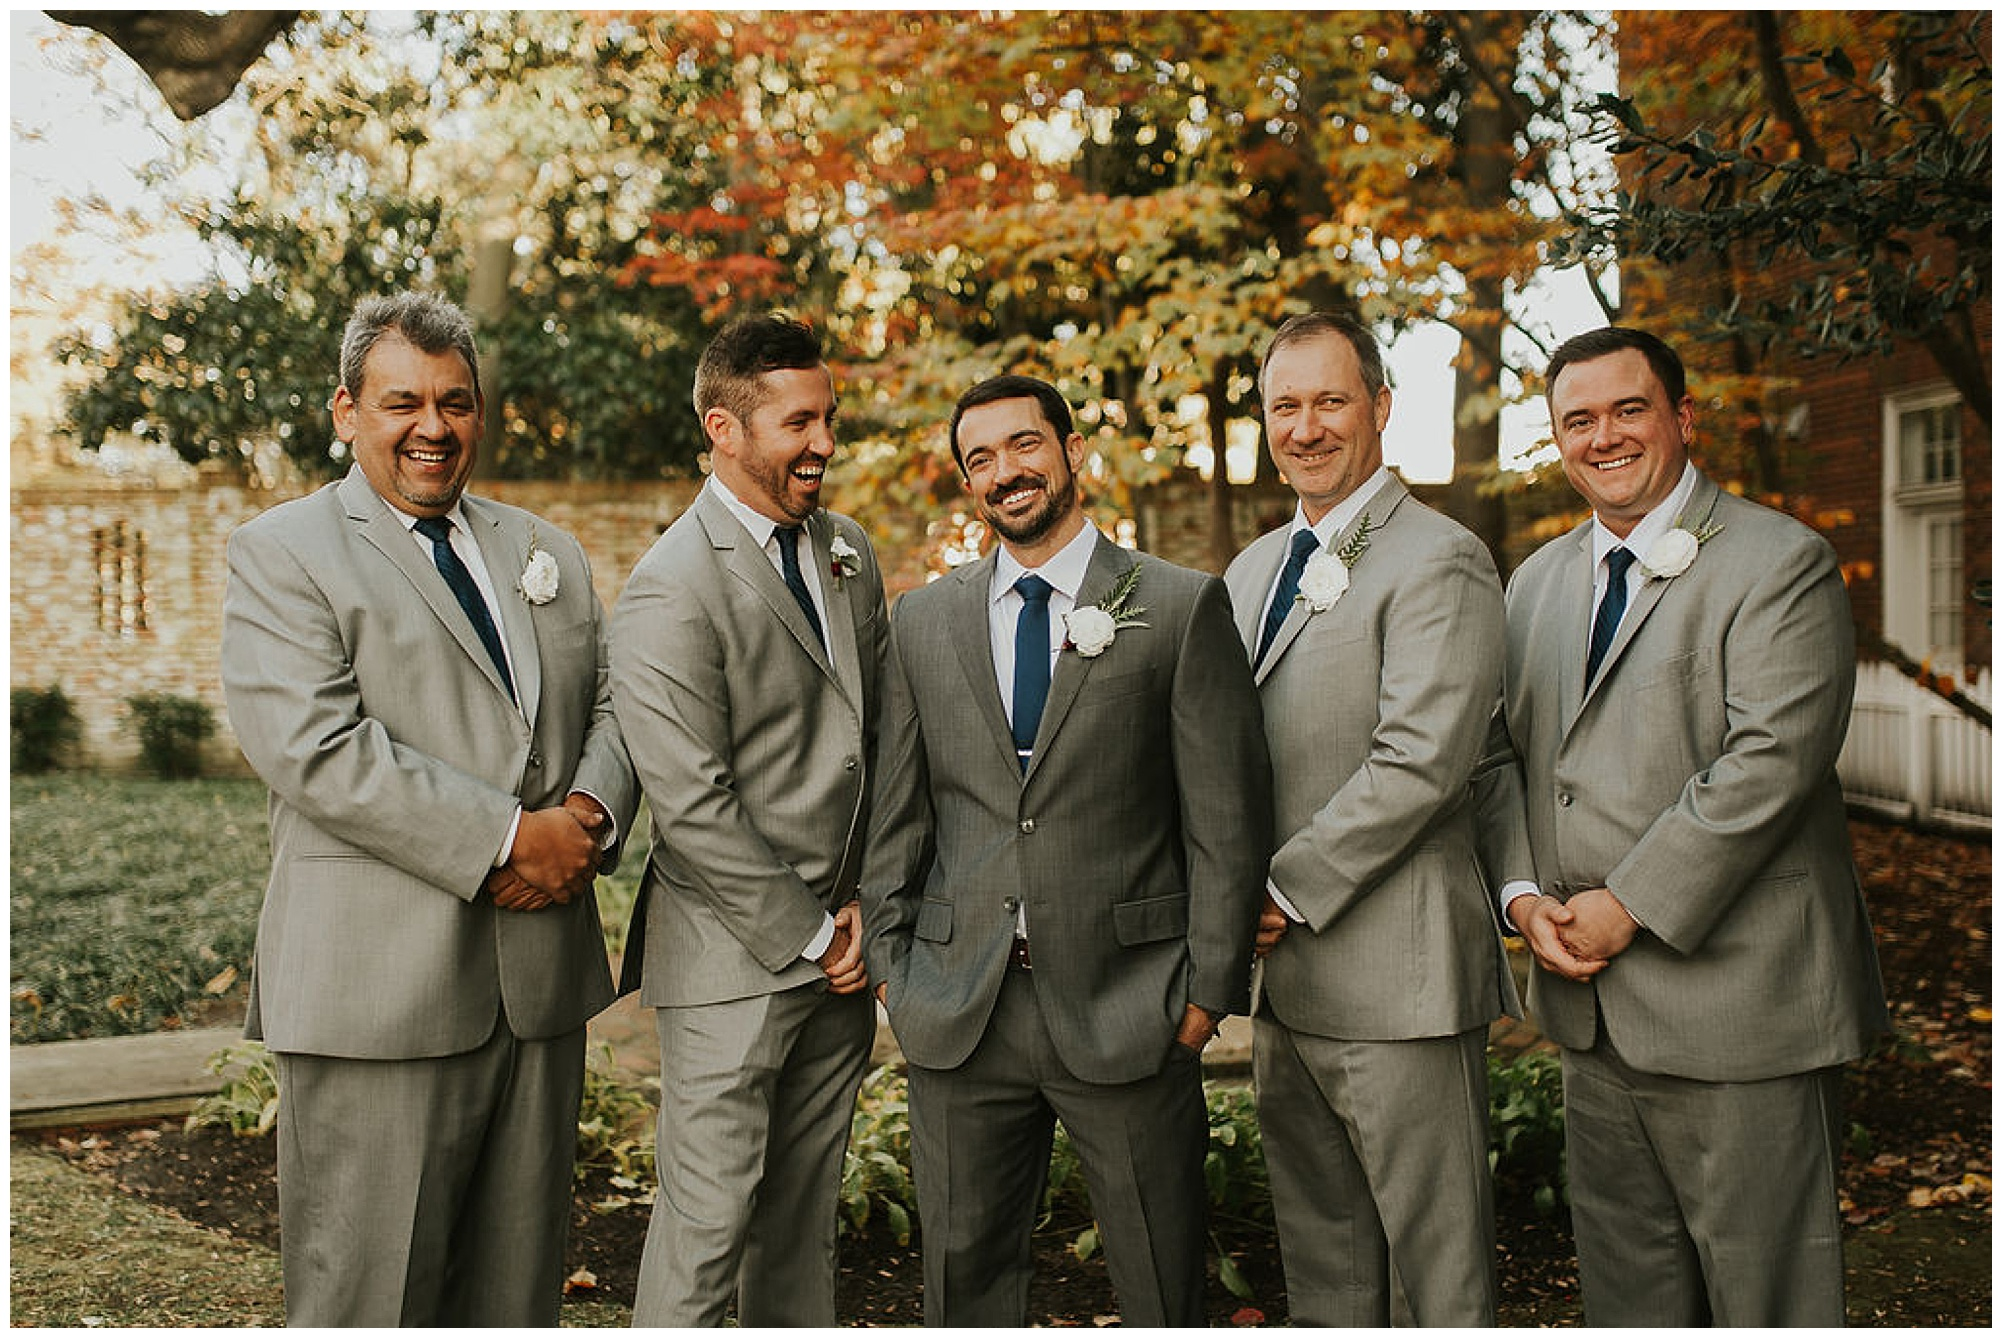 happy groom and groomsmen outdoors at the tidewater inn venue in easton maryland in the fall autumn. classic, yet coastal wedding inspo from maryland eastern shore.